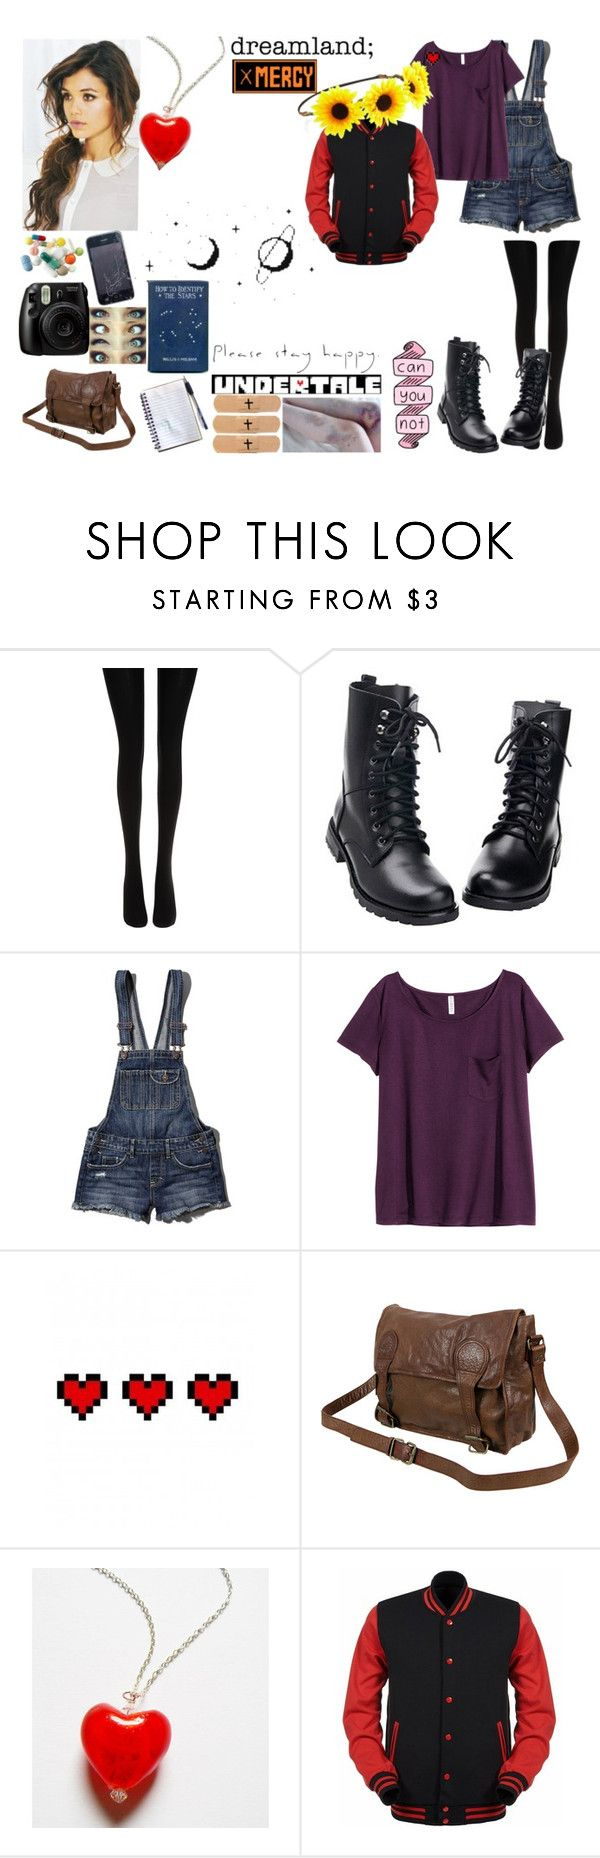 """Undertale OC"" by dreaming-of-nightmares ❤ liked on Polyvore featuring Wolford, Abercrombie & Fitch, H&M, Retrò, VIPARO and Forever 21"